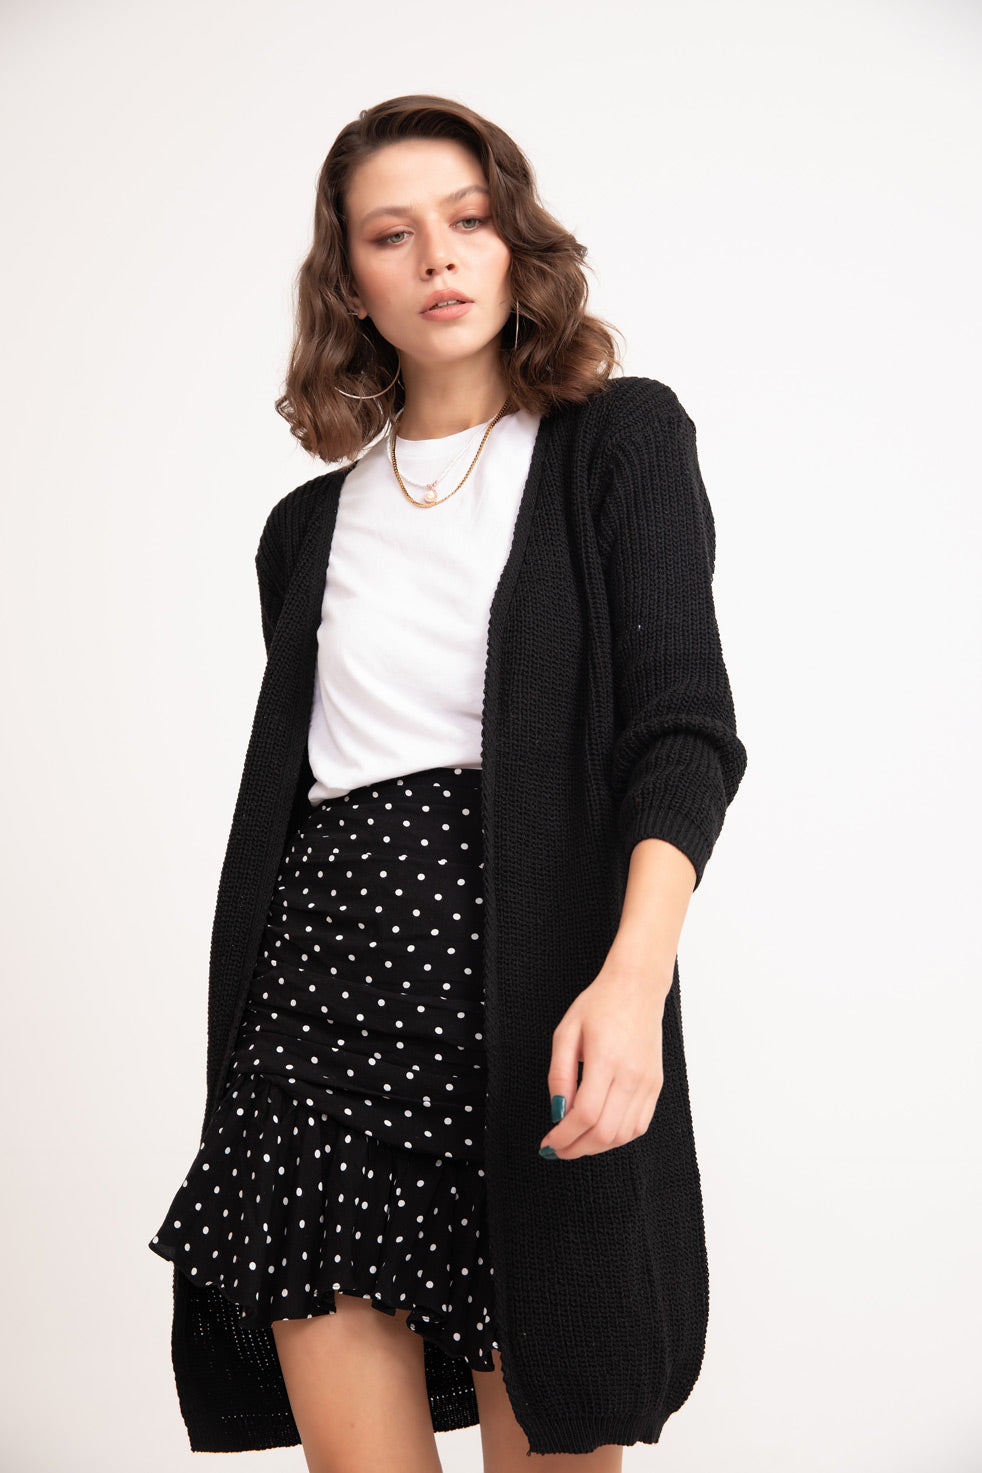 Women's Basic Black Cardigan